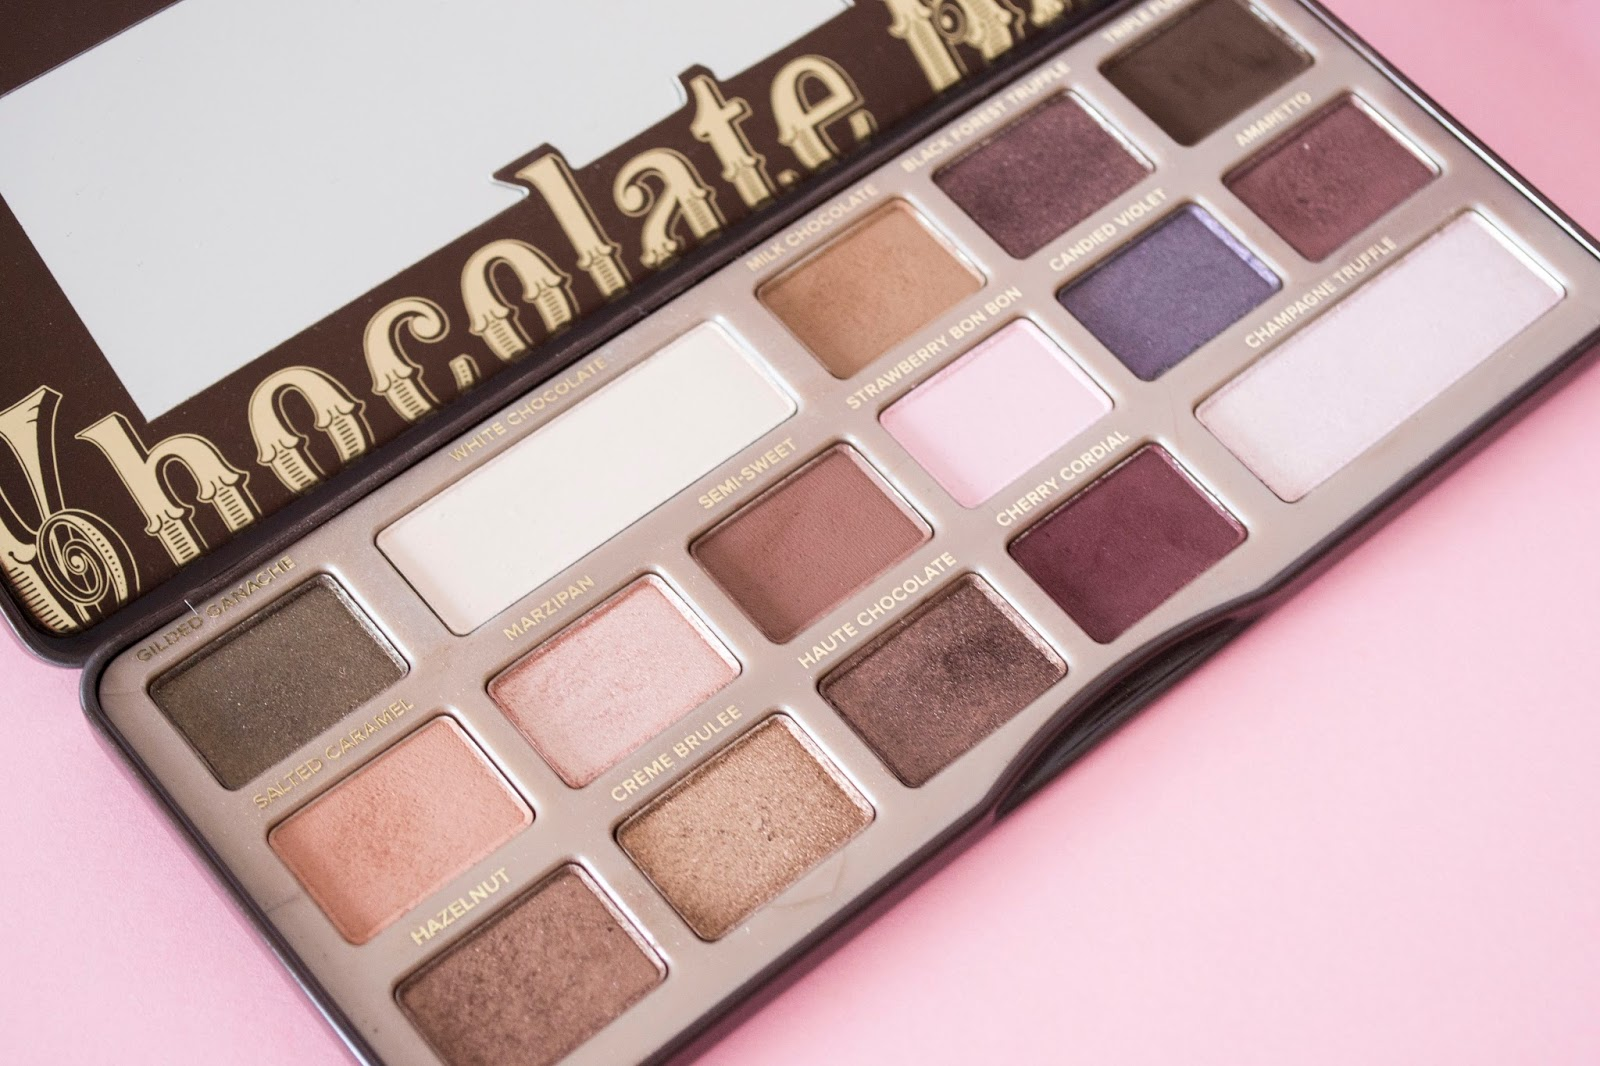 Favoritos de maquillaje 2017 paleta de sombras Chocolate Bar Too Faced